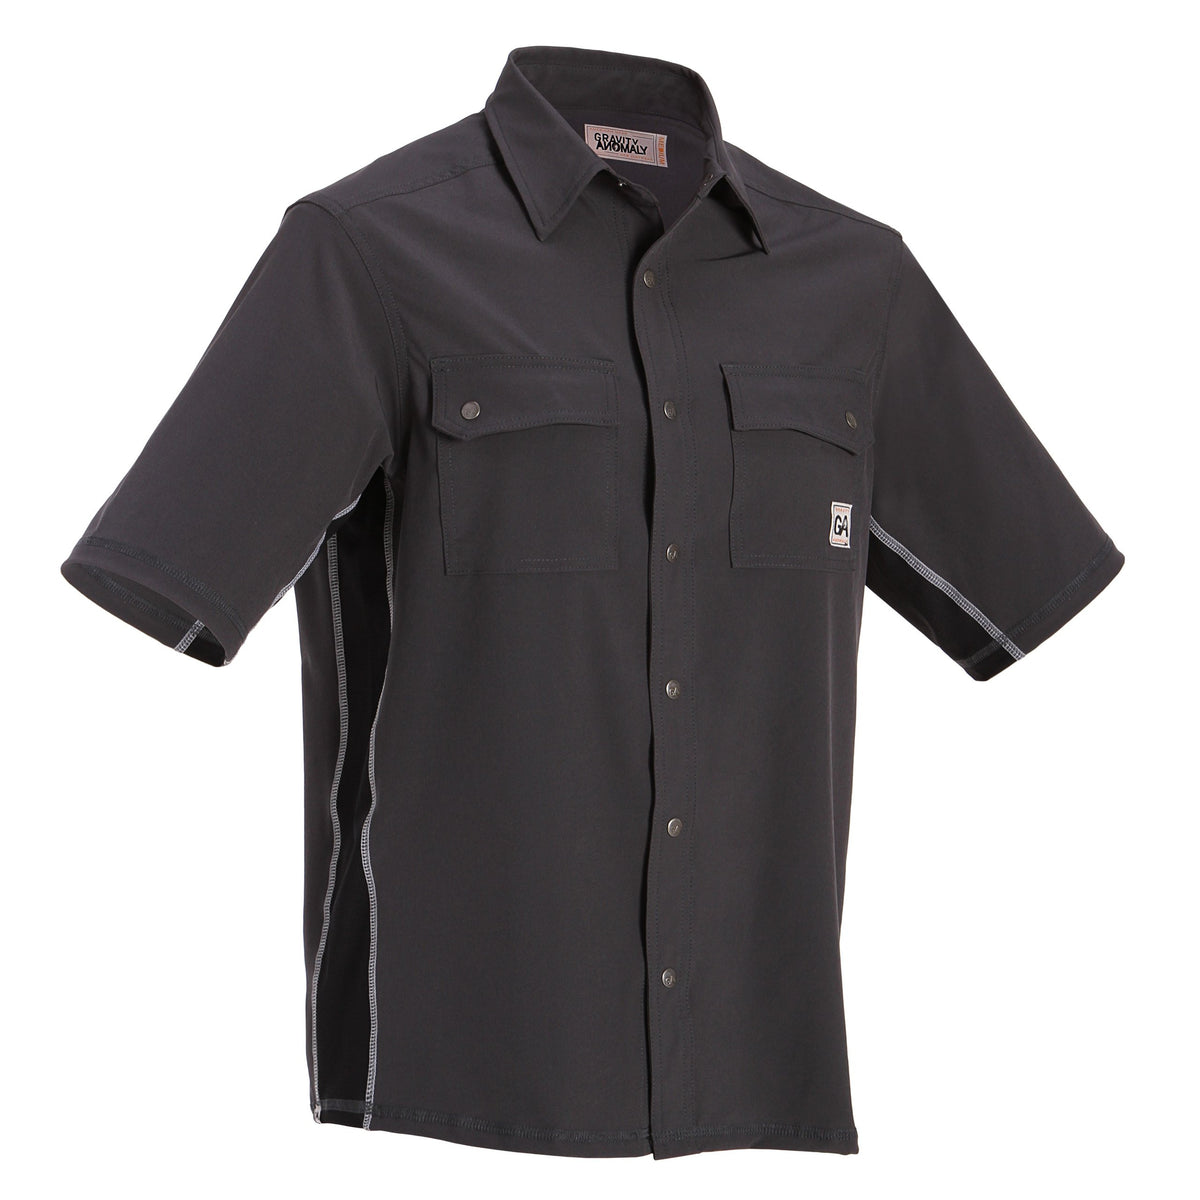 Boardroom Mountain Bike Jersey II Pewter